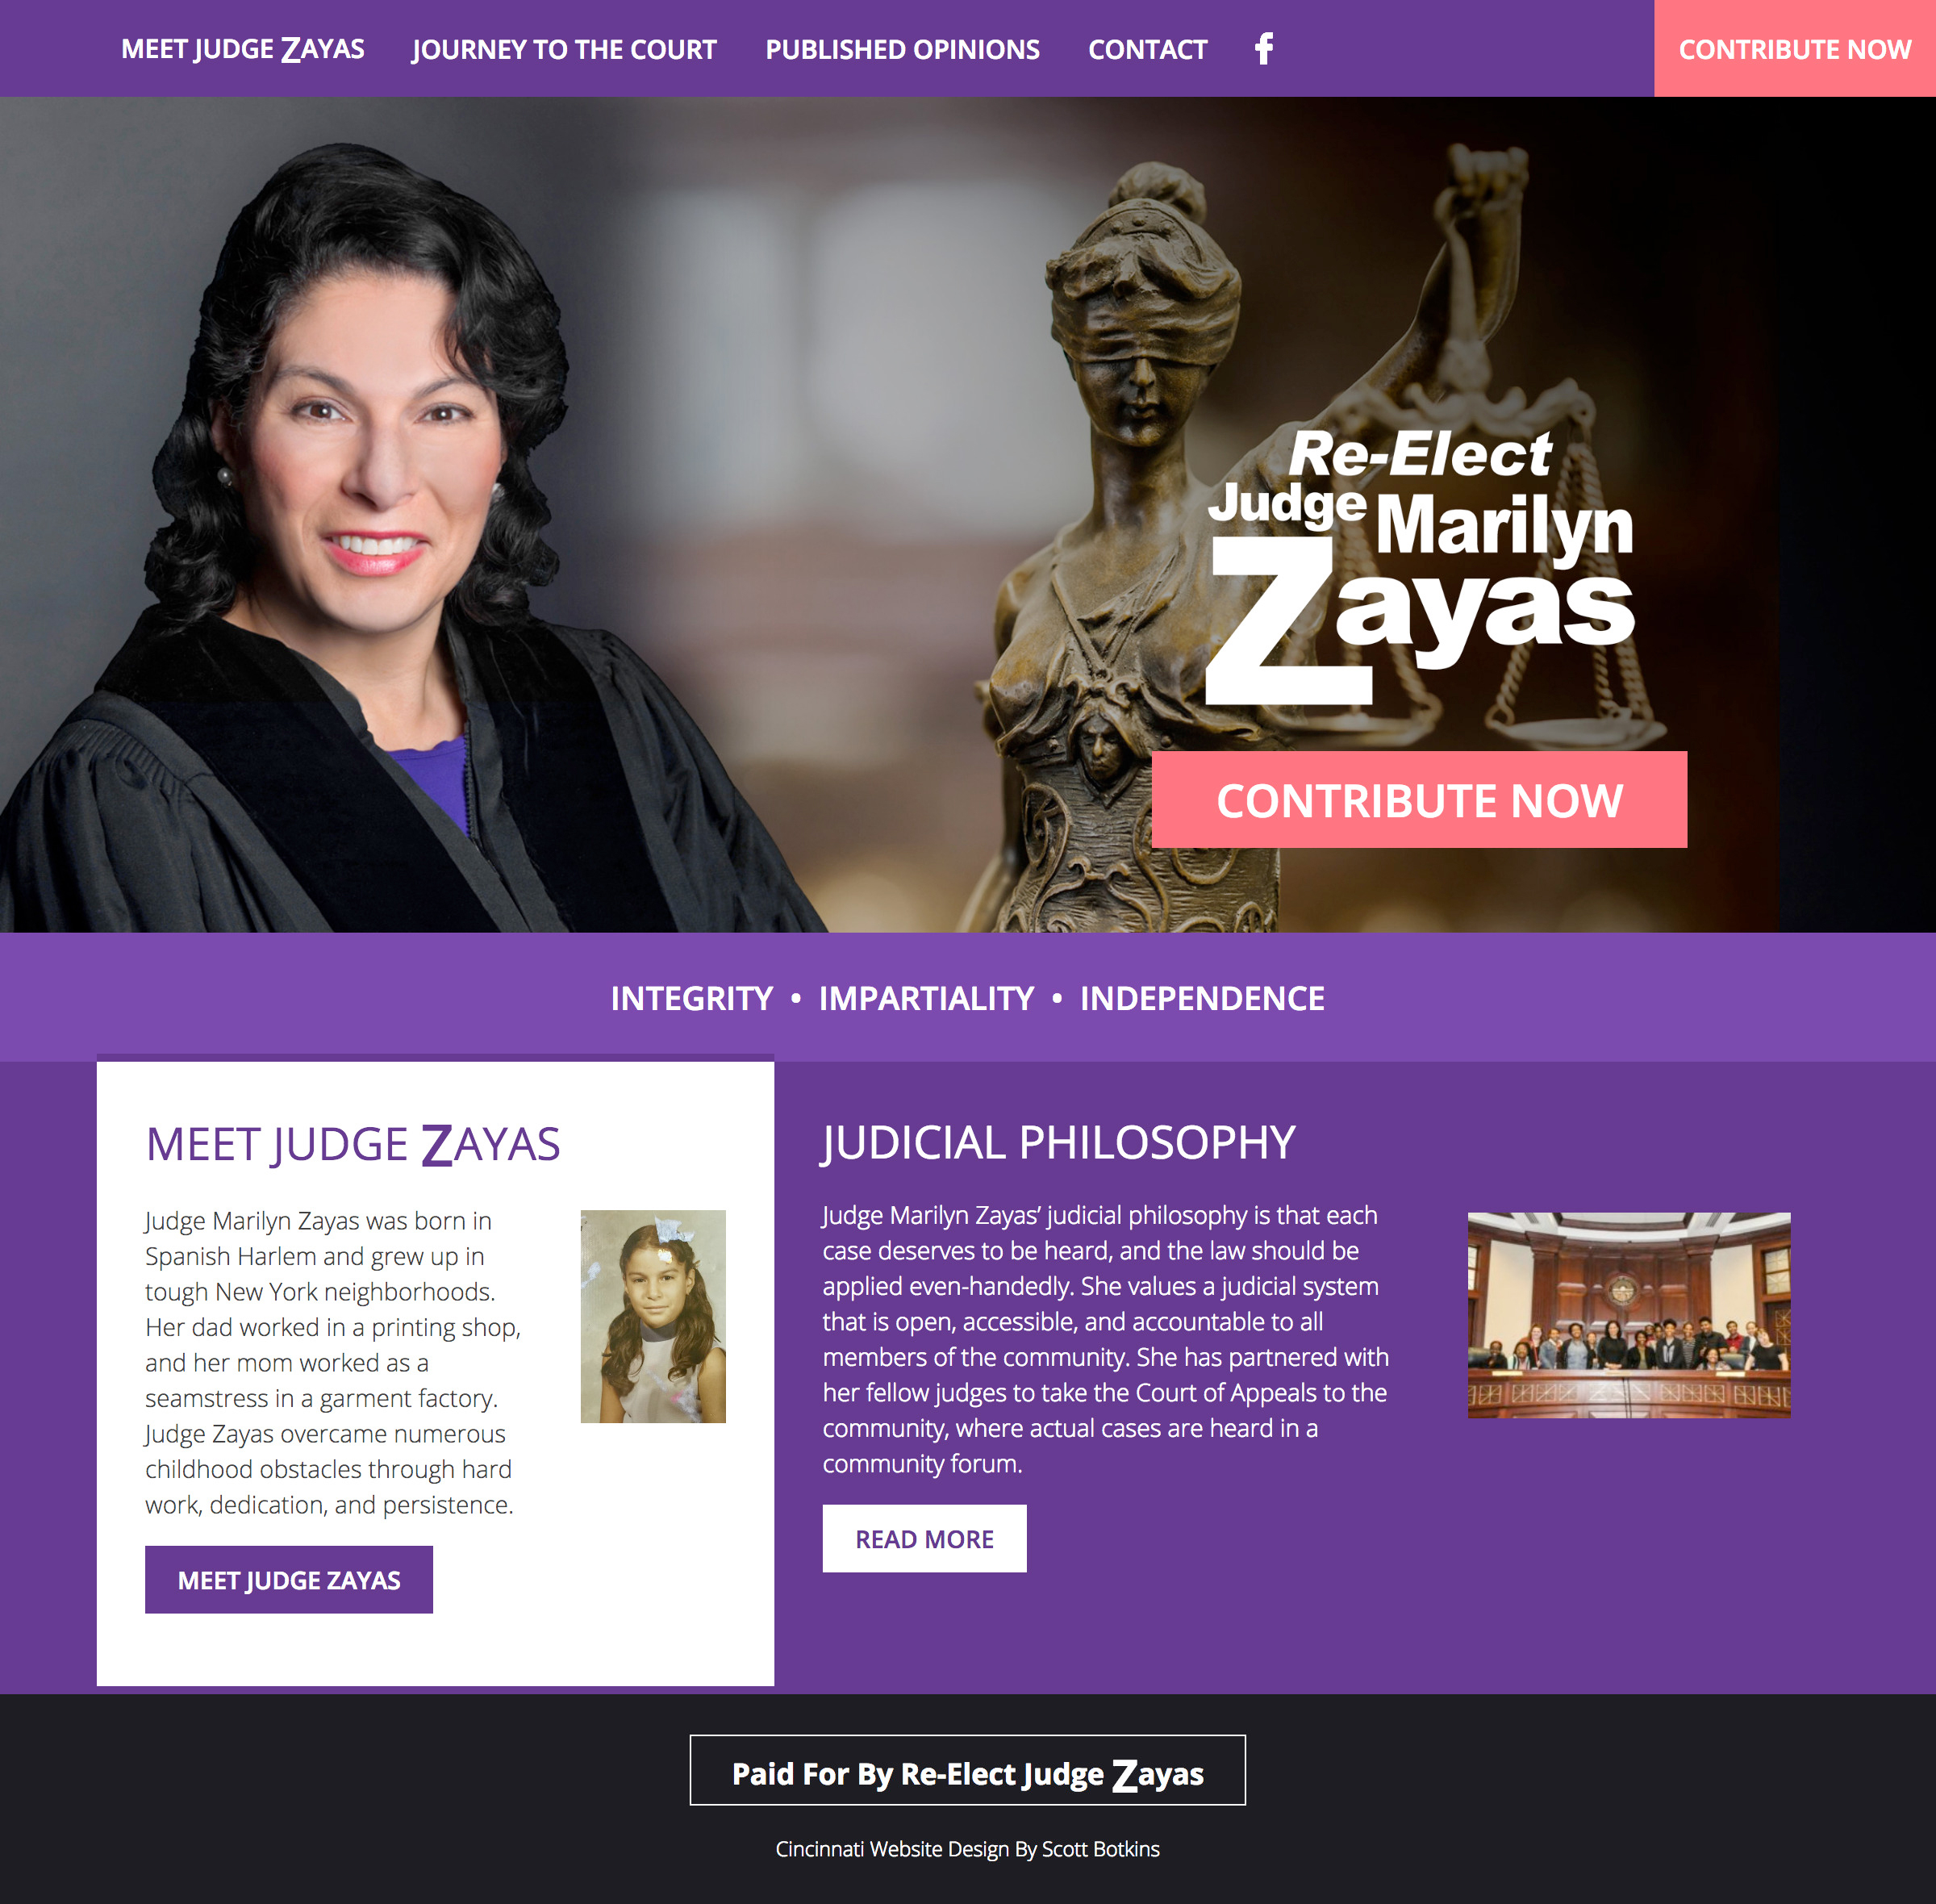 Judge Marilyn Zayas